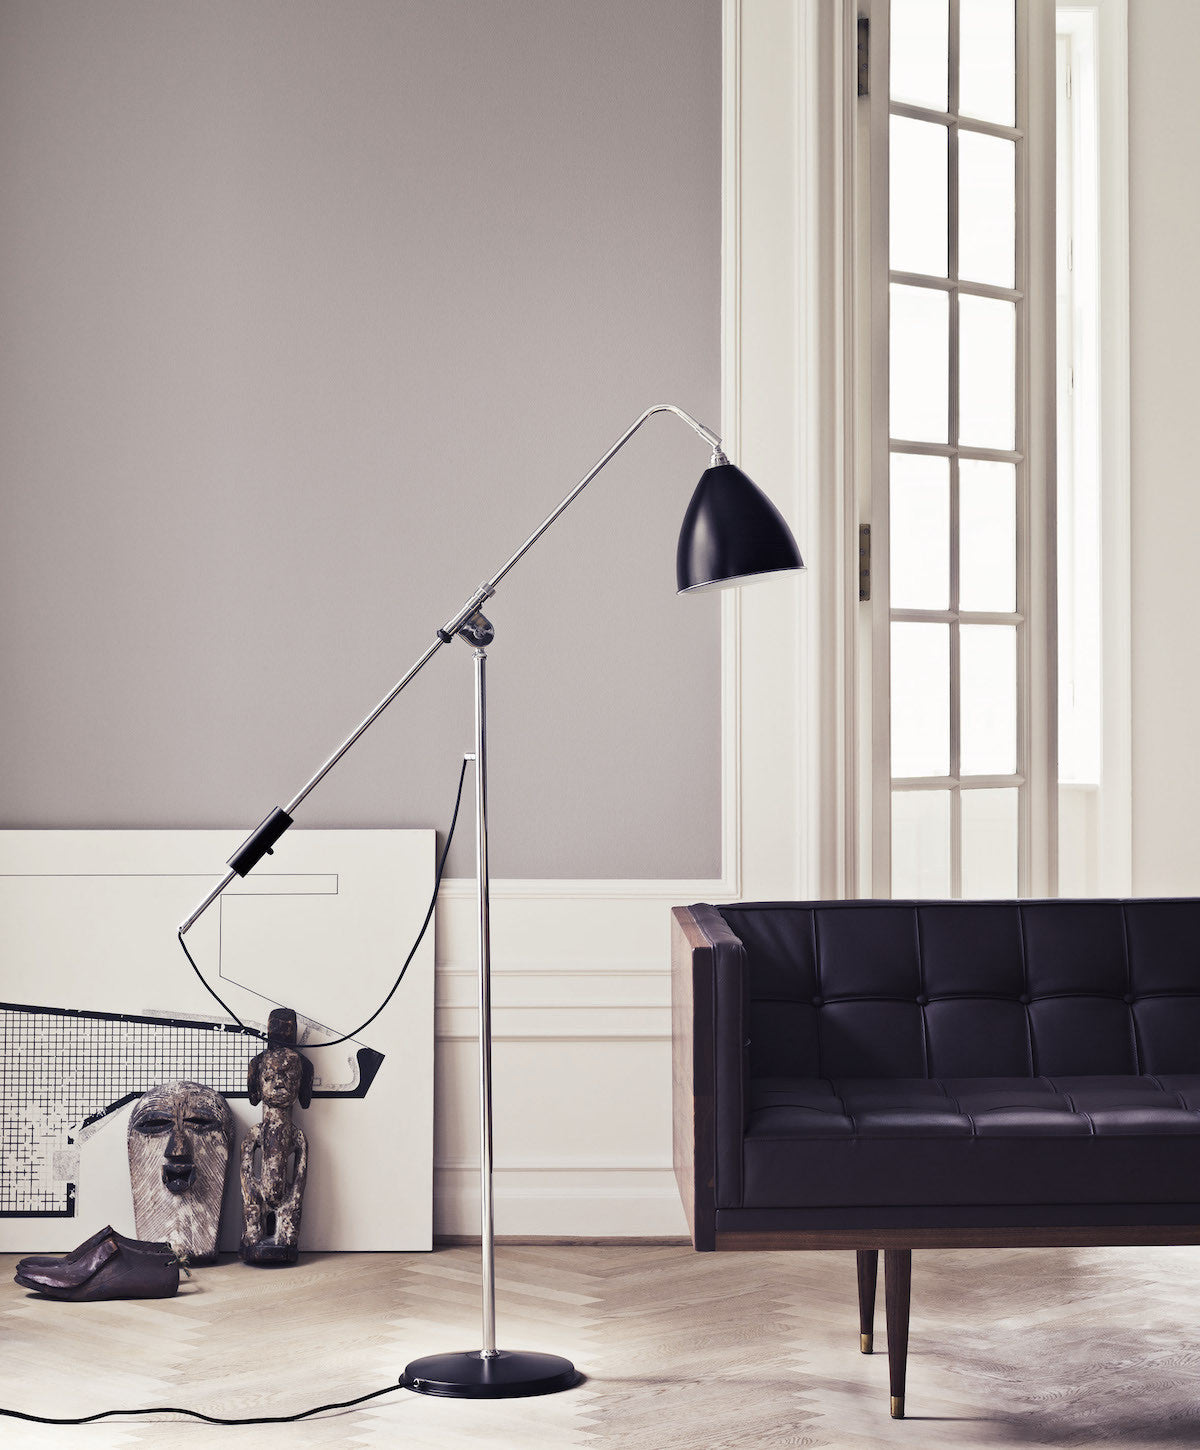 Bestlite BL4 Floor Lamp - Ø21 - Crome Base, Black fra GUBI